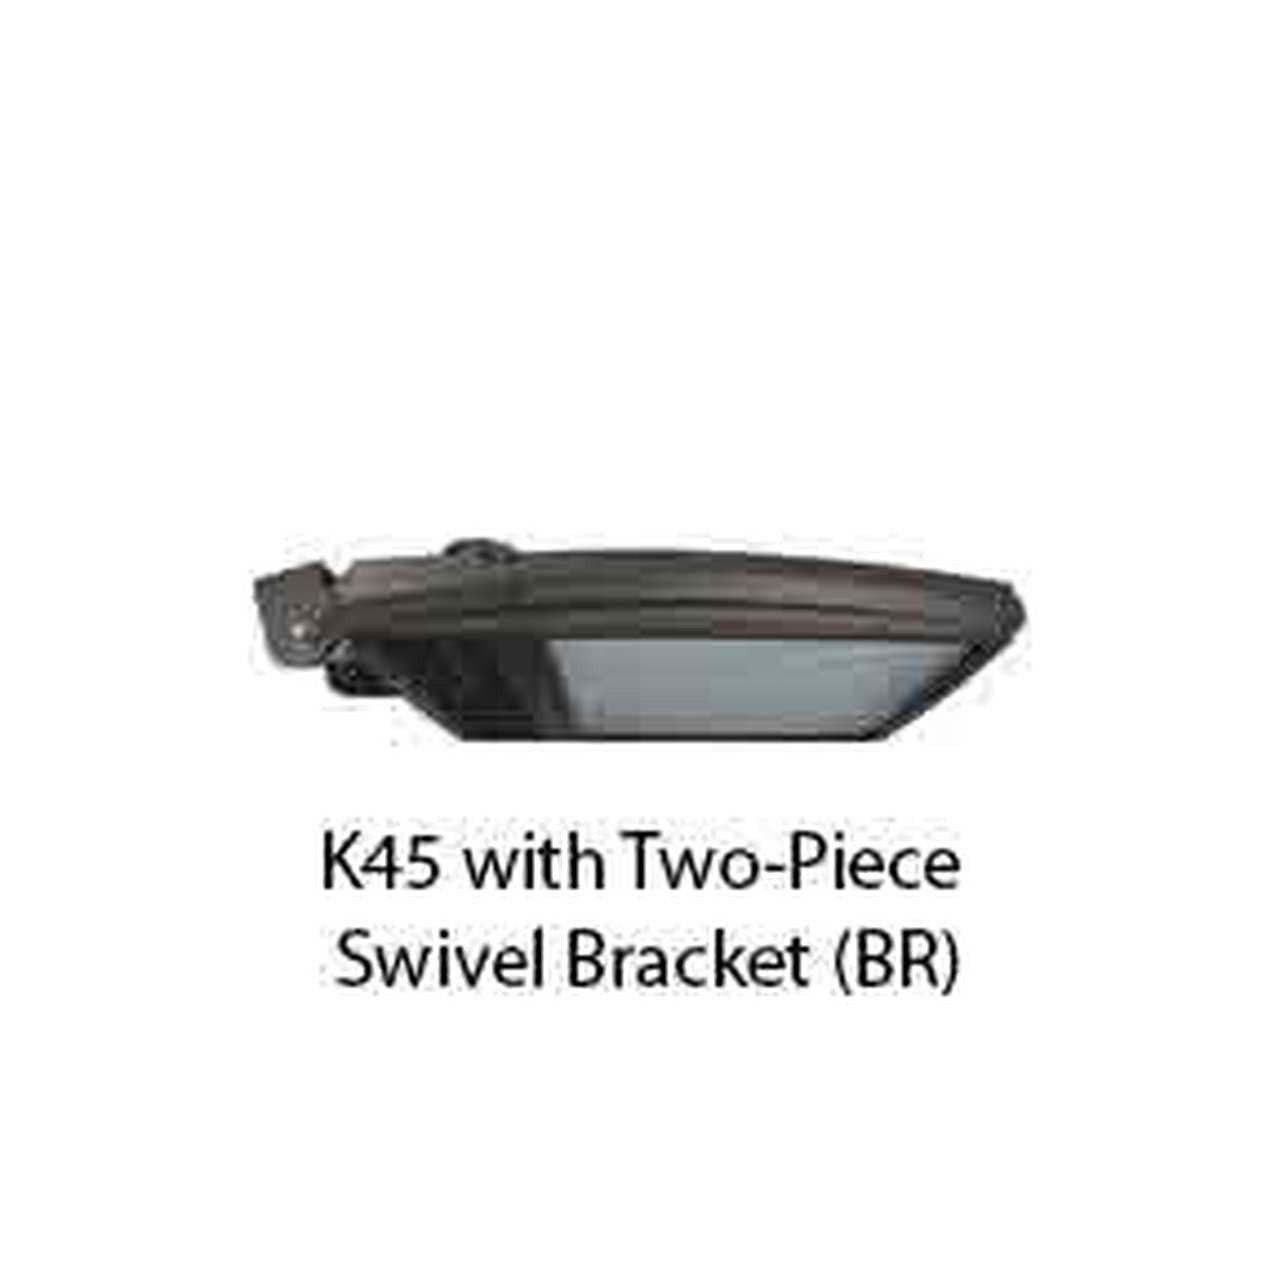 K45 with Two-Piece Swivel Bracket (BR)